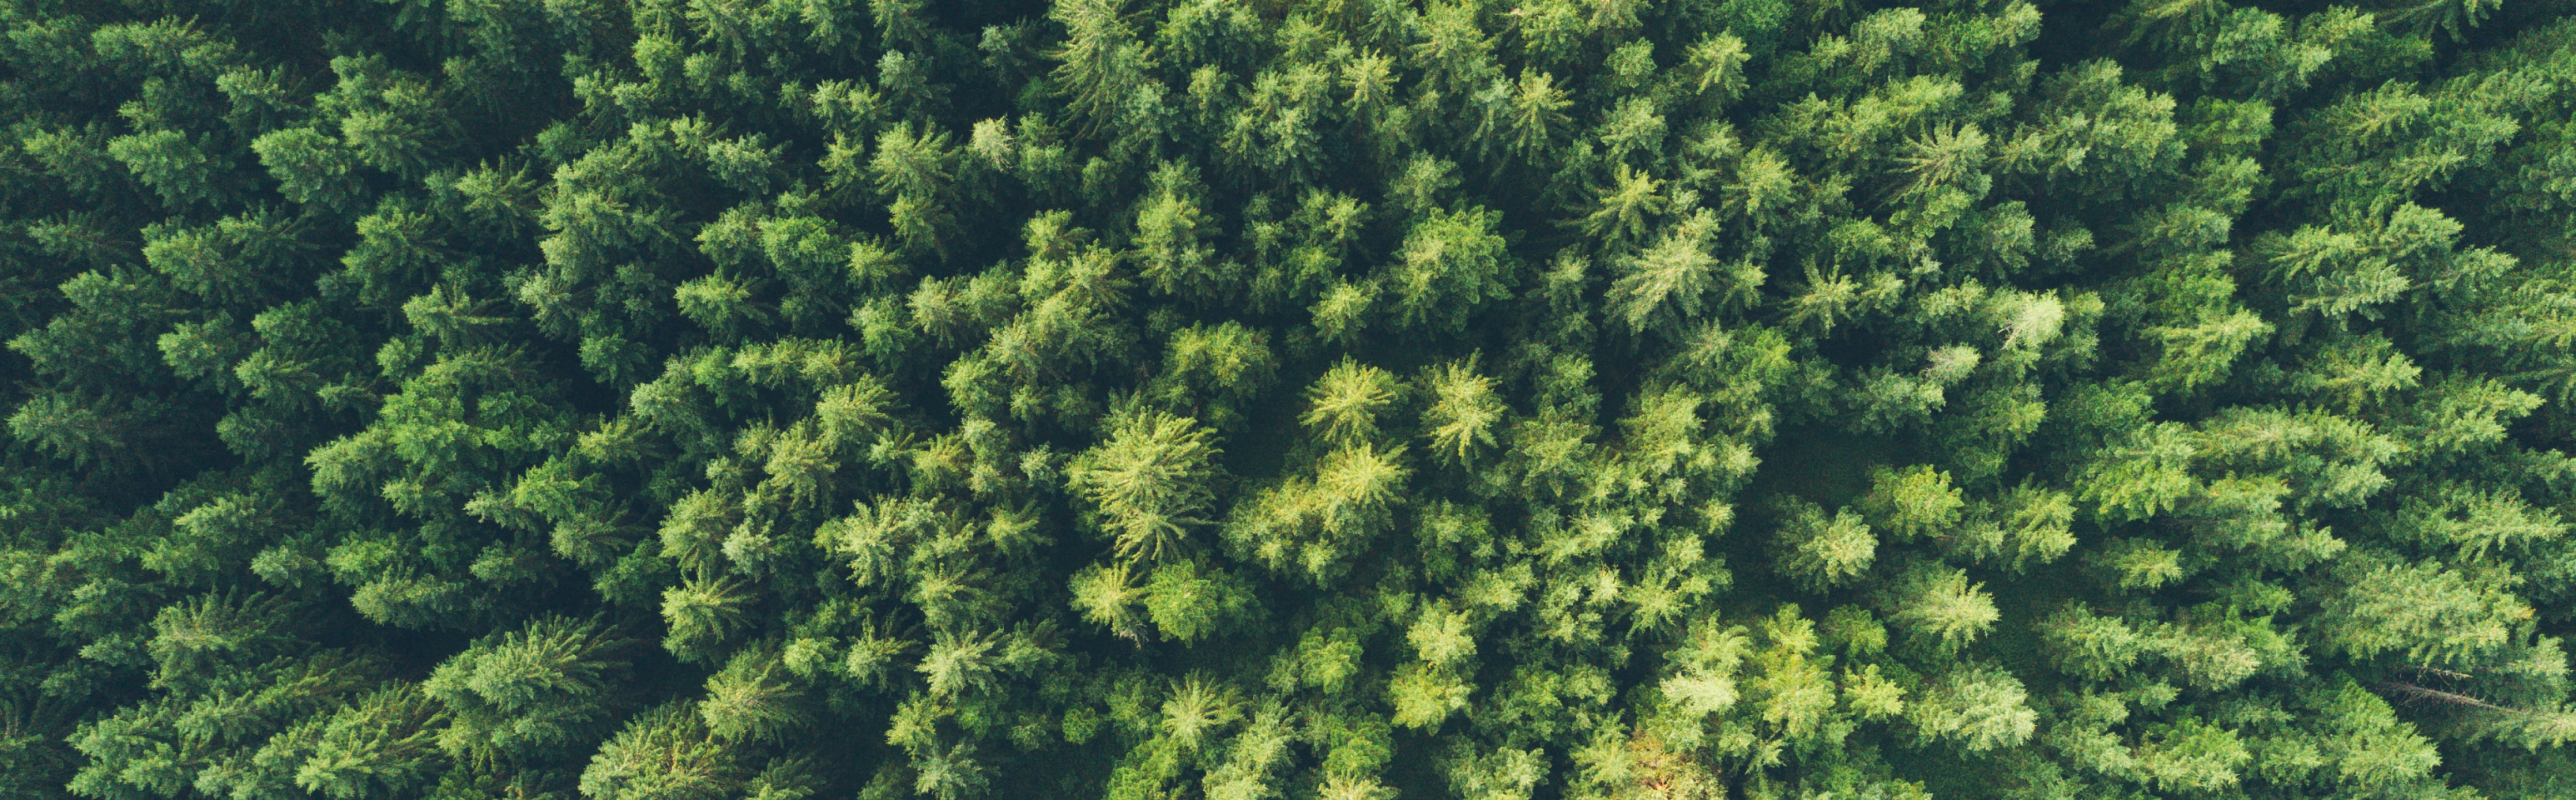 Arial view of a pine forest